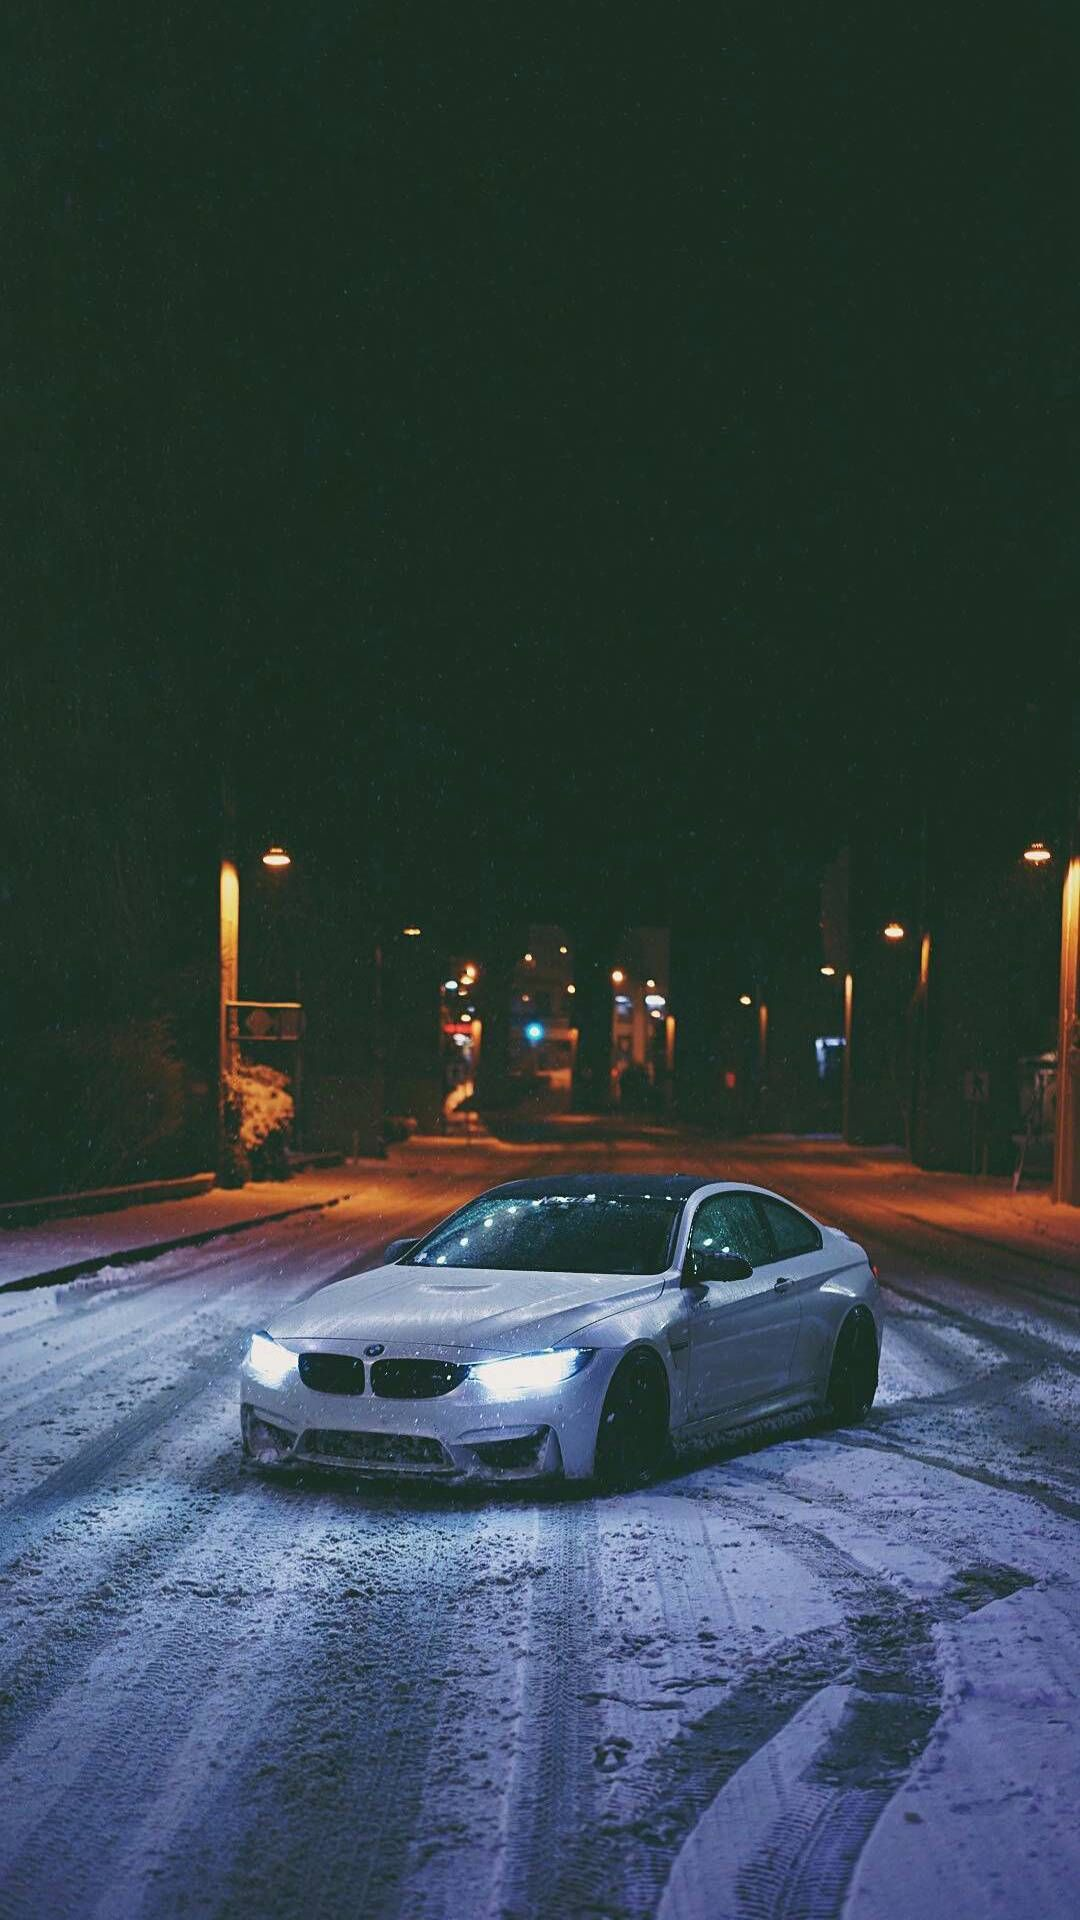 Bmw M4 Hd Iphone Wallpaper Sports Car Wallpapers - Medium